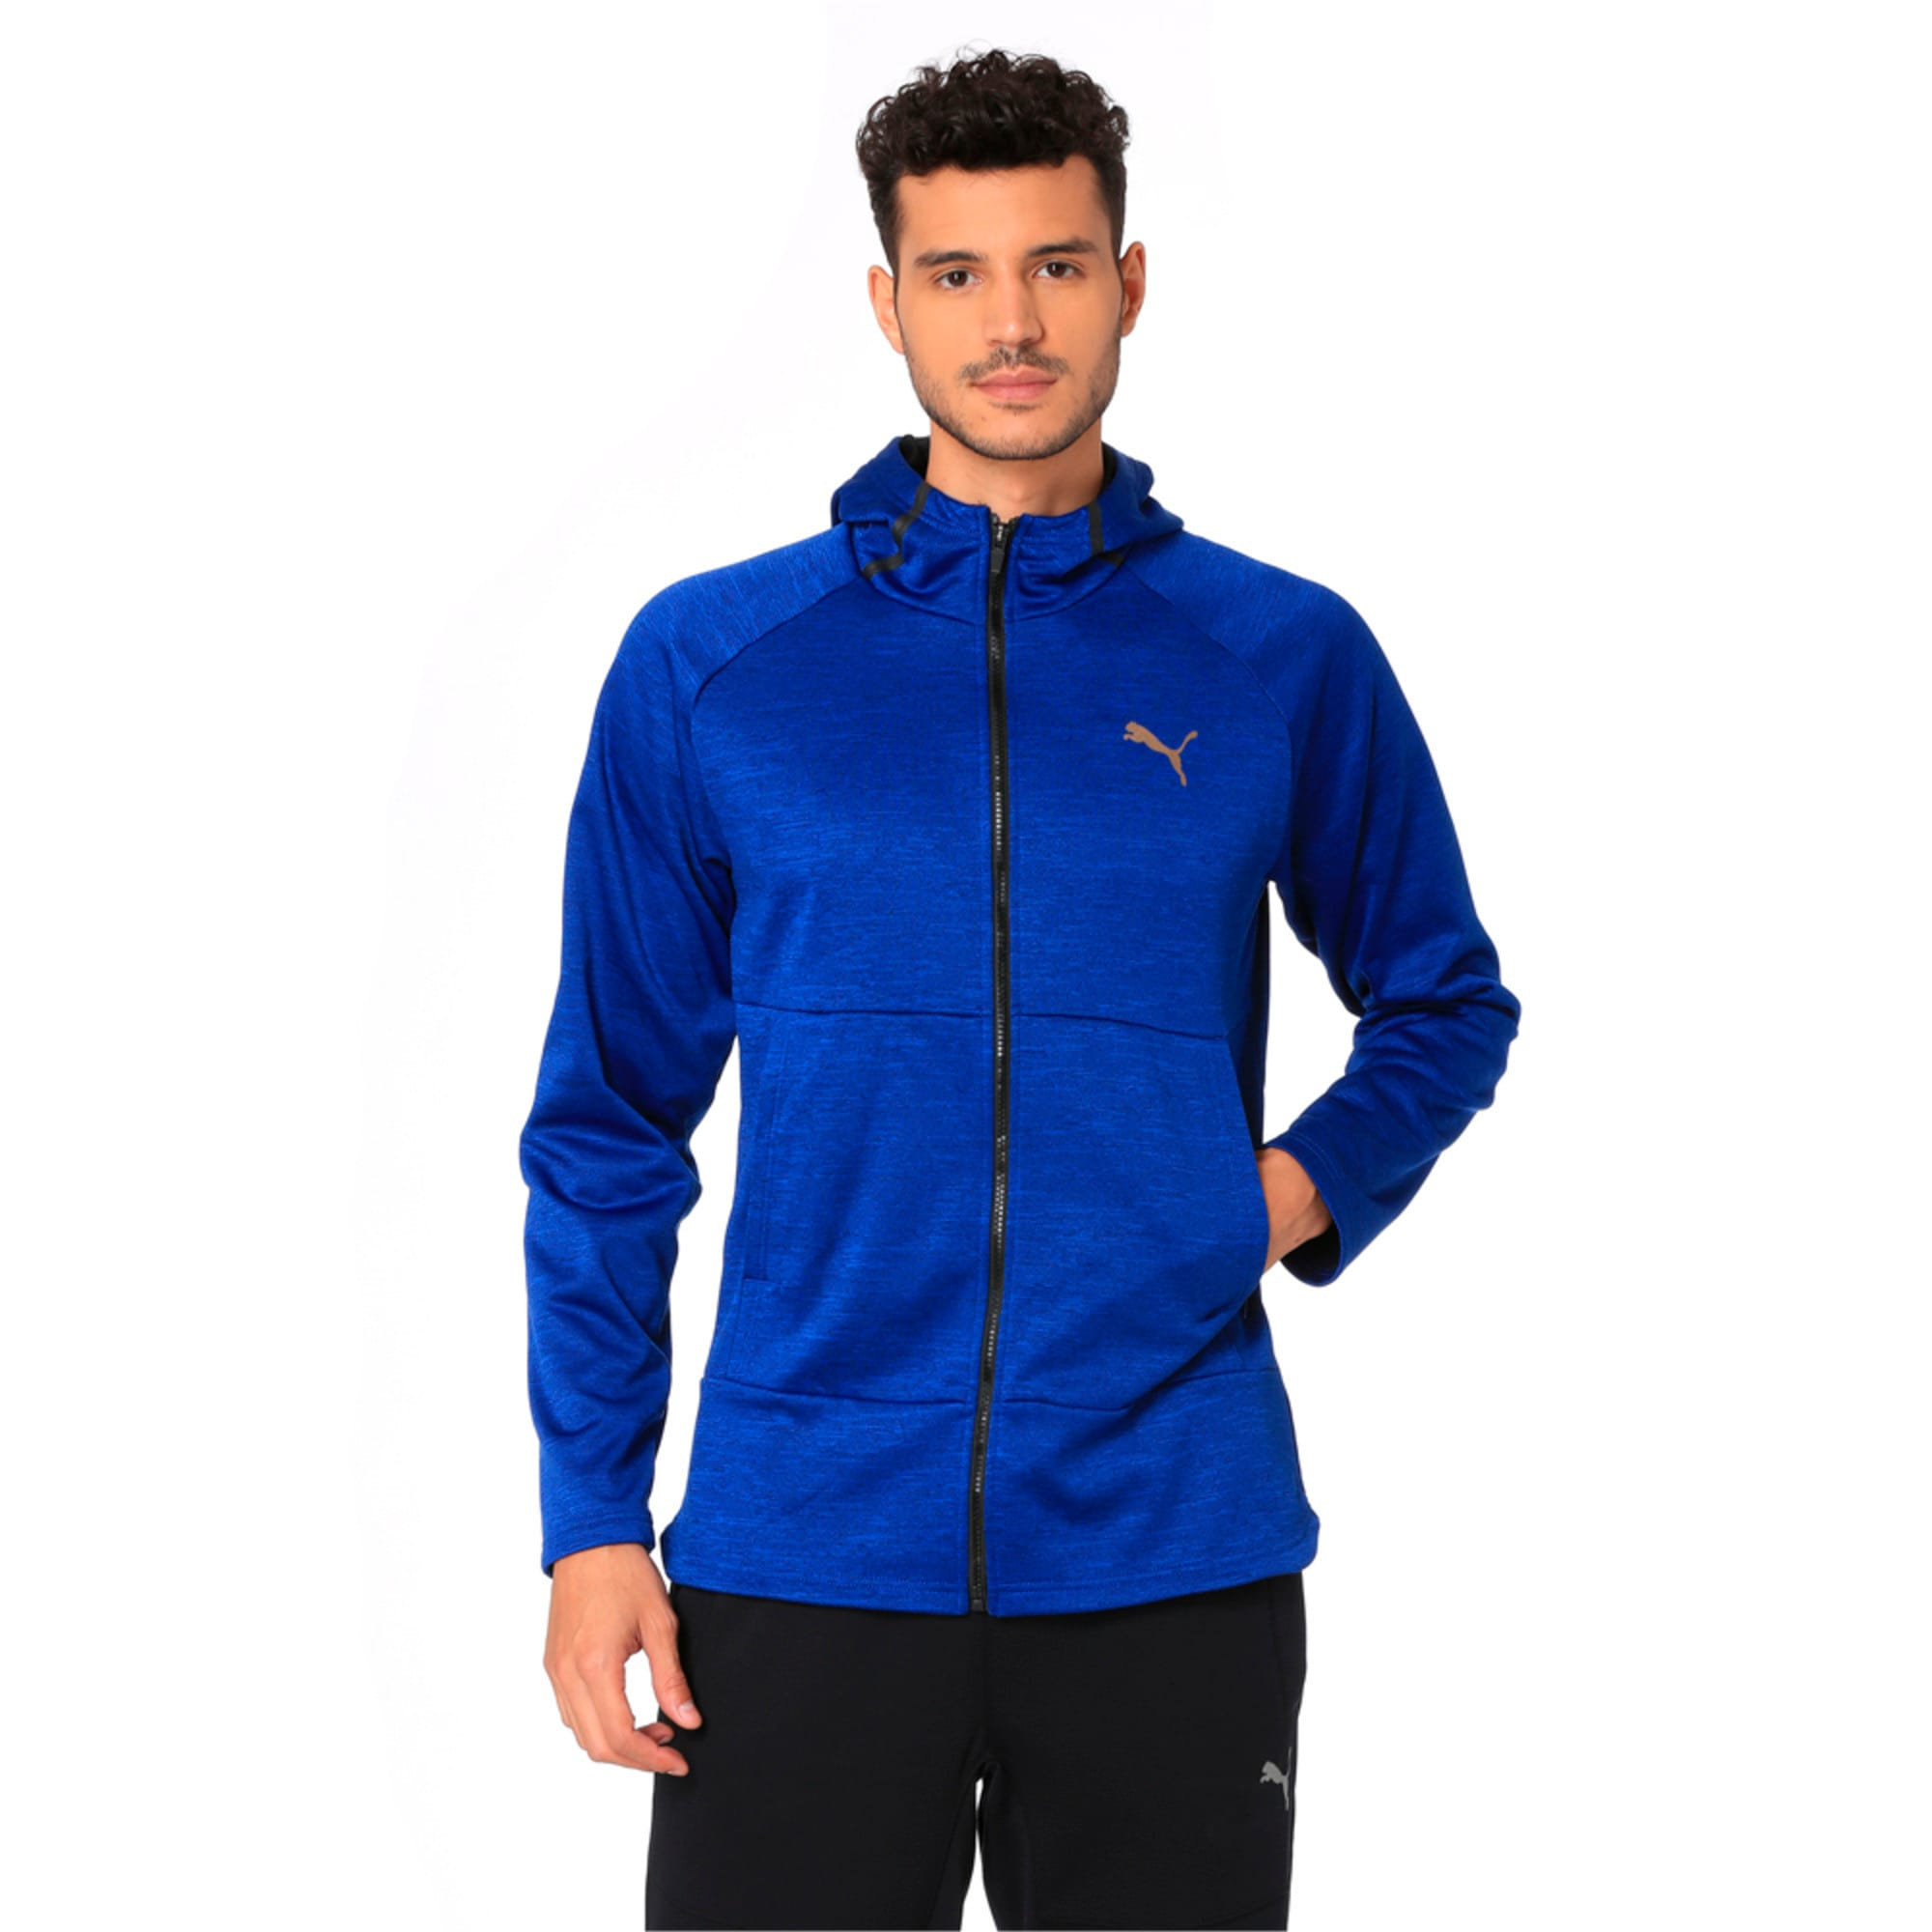 Thumbnail 1 of Q4 BND Tech Protect Jacket Puma Black He, Sodalite Blue Heather, medium-IND